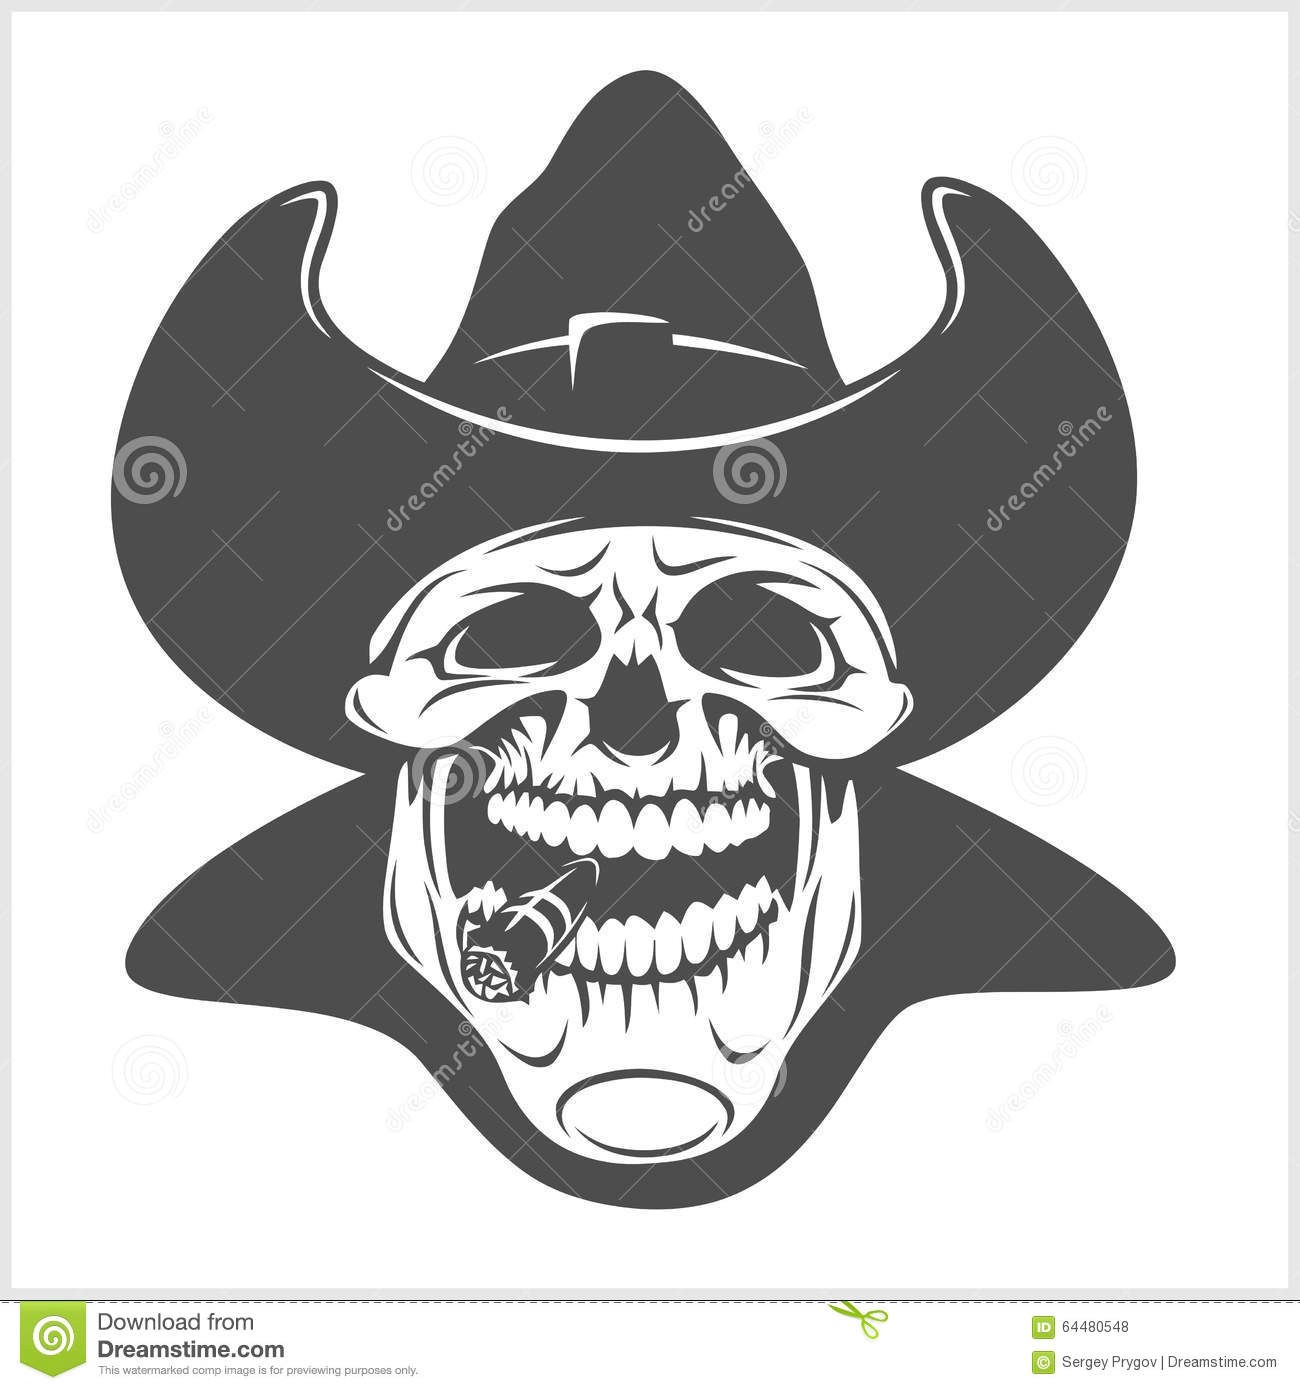 e0ea5f6540a5c Skull In Cowboy Hat - Gangster Stock Vector - Illustration of black ...